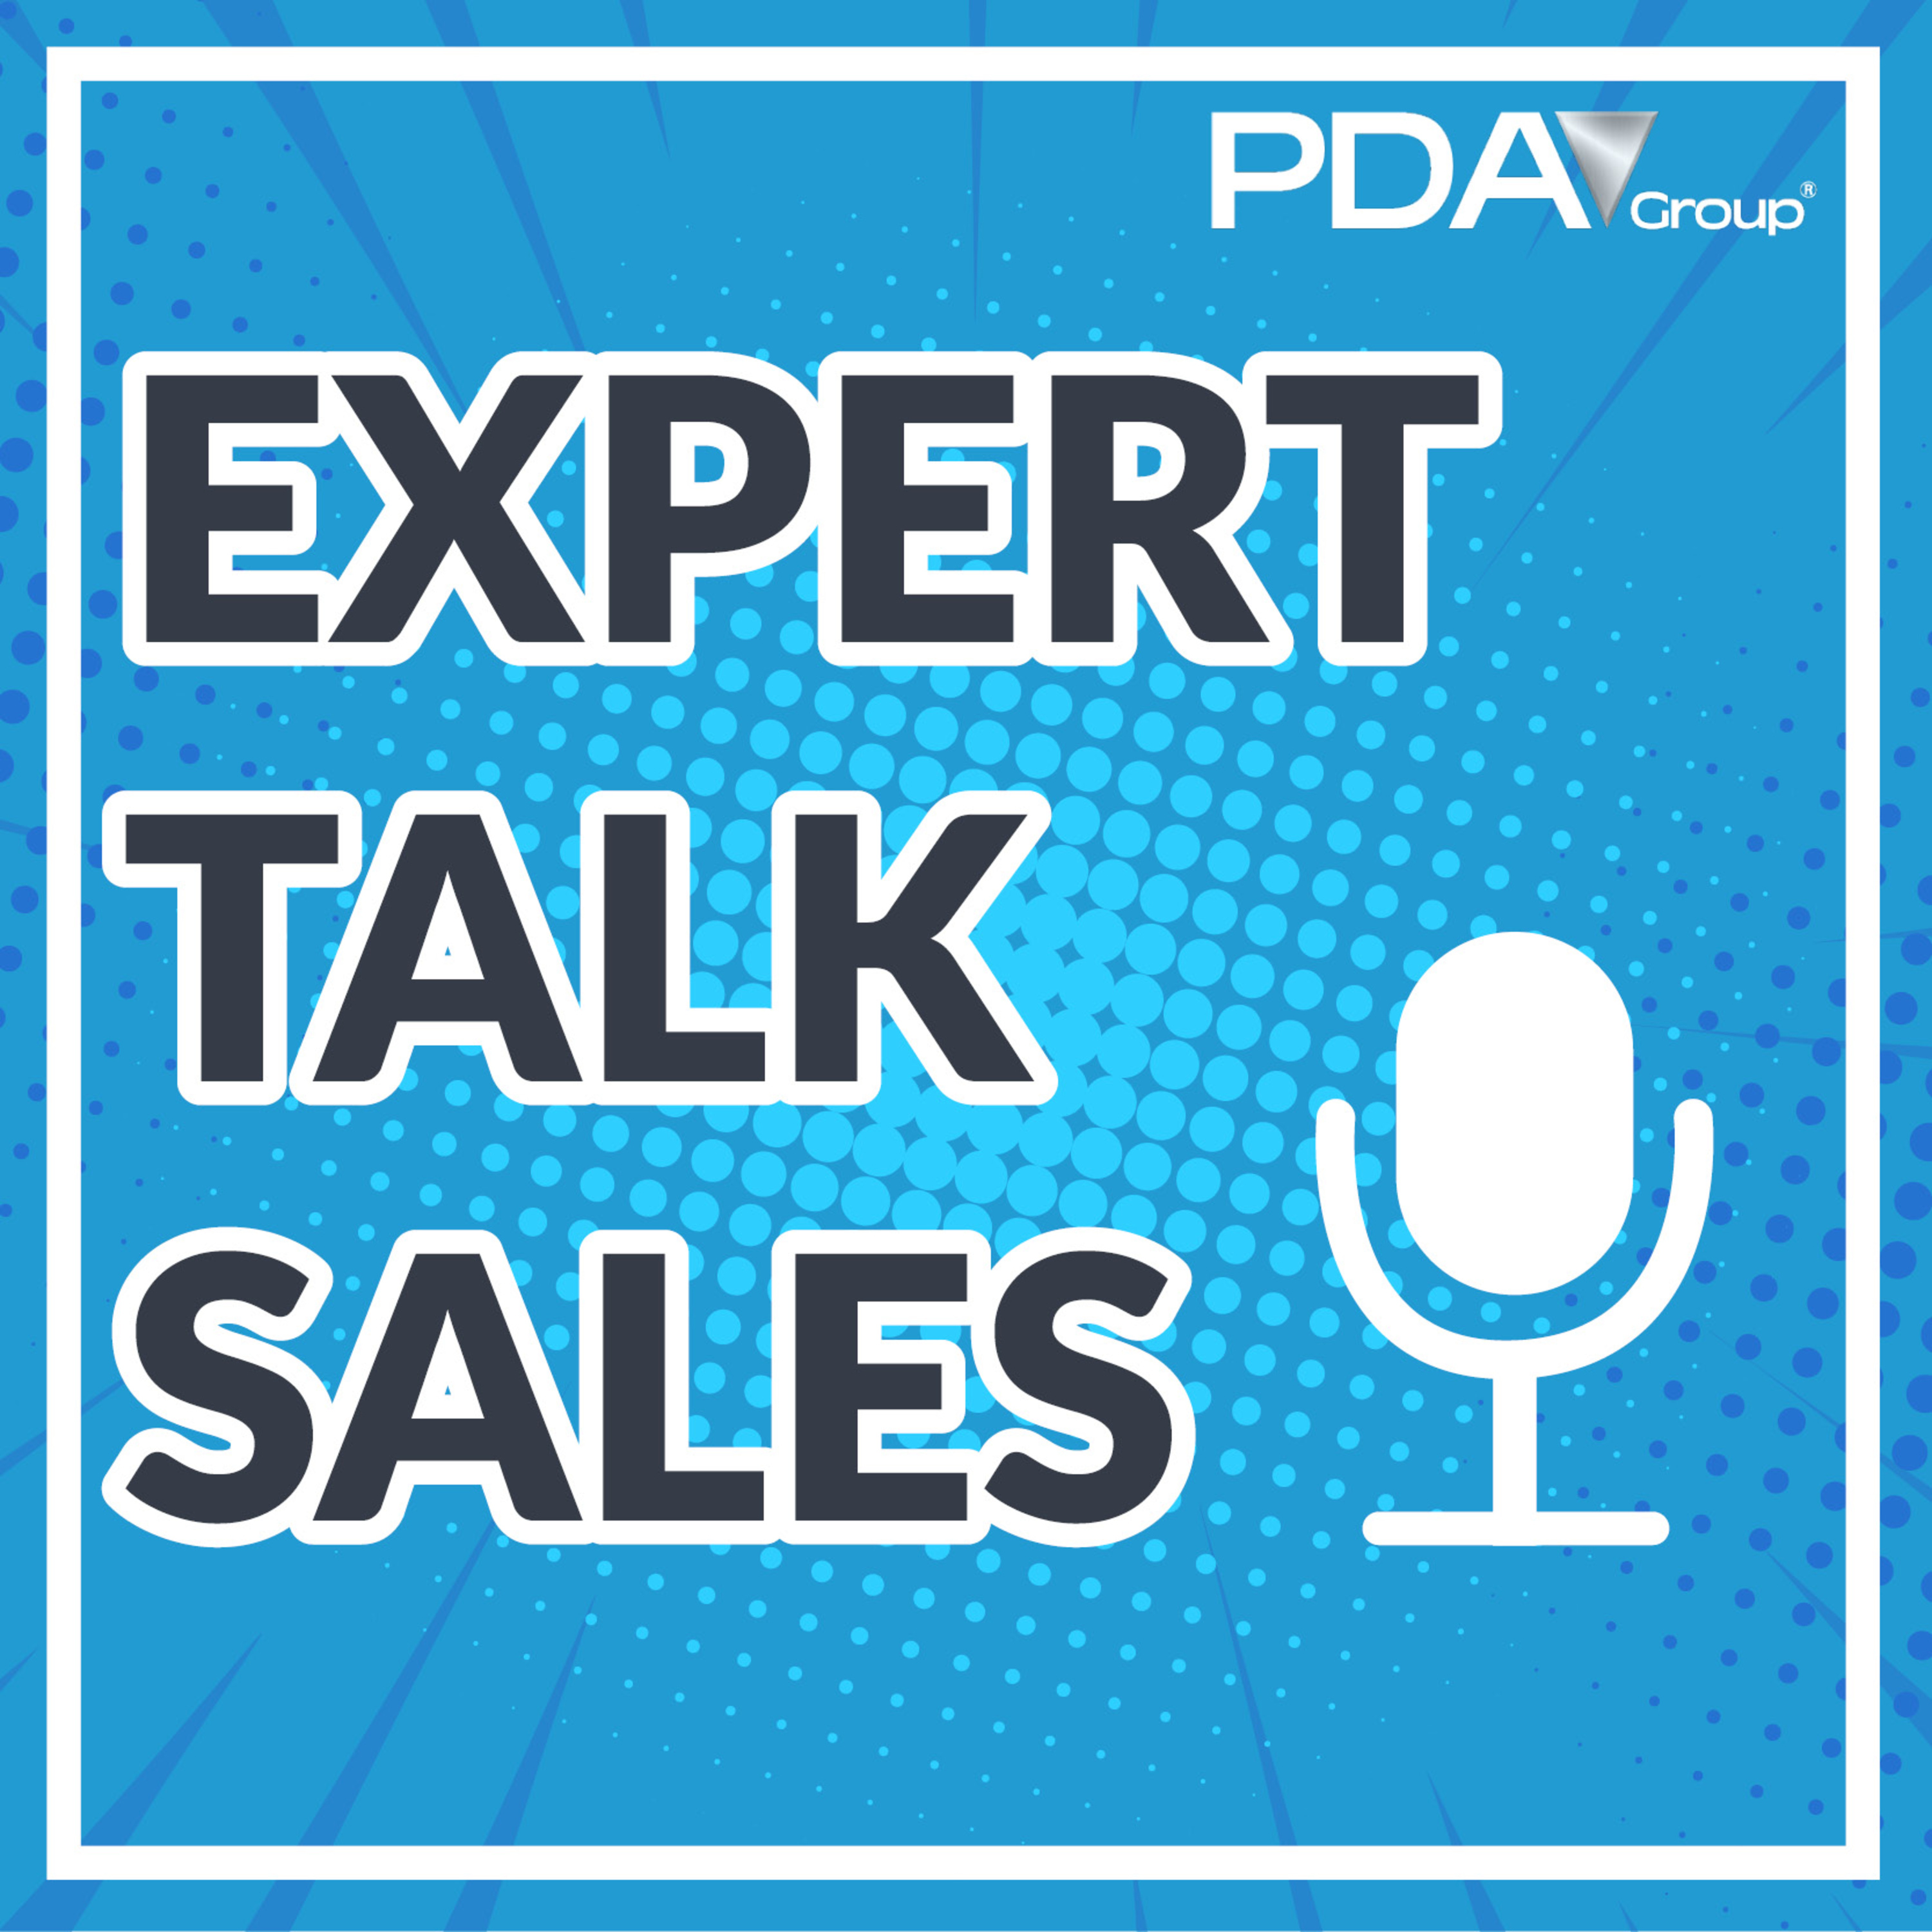 Expert Talk Sales with Jacek Chmielecki: Objection Handling Techniques in Sales